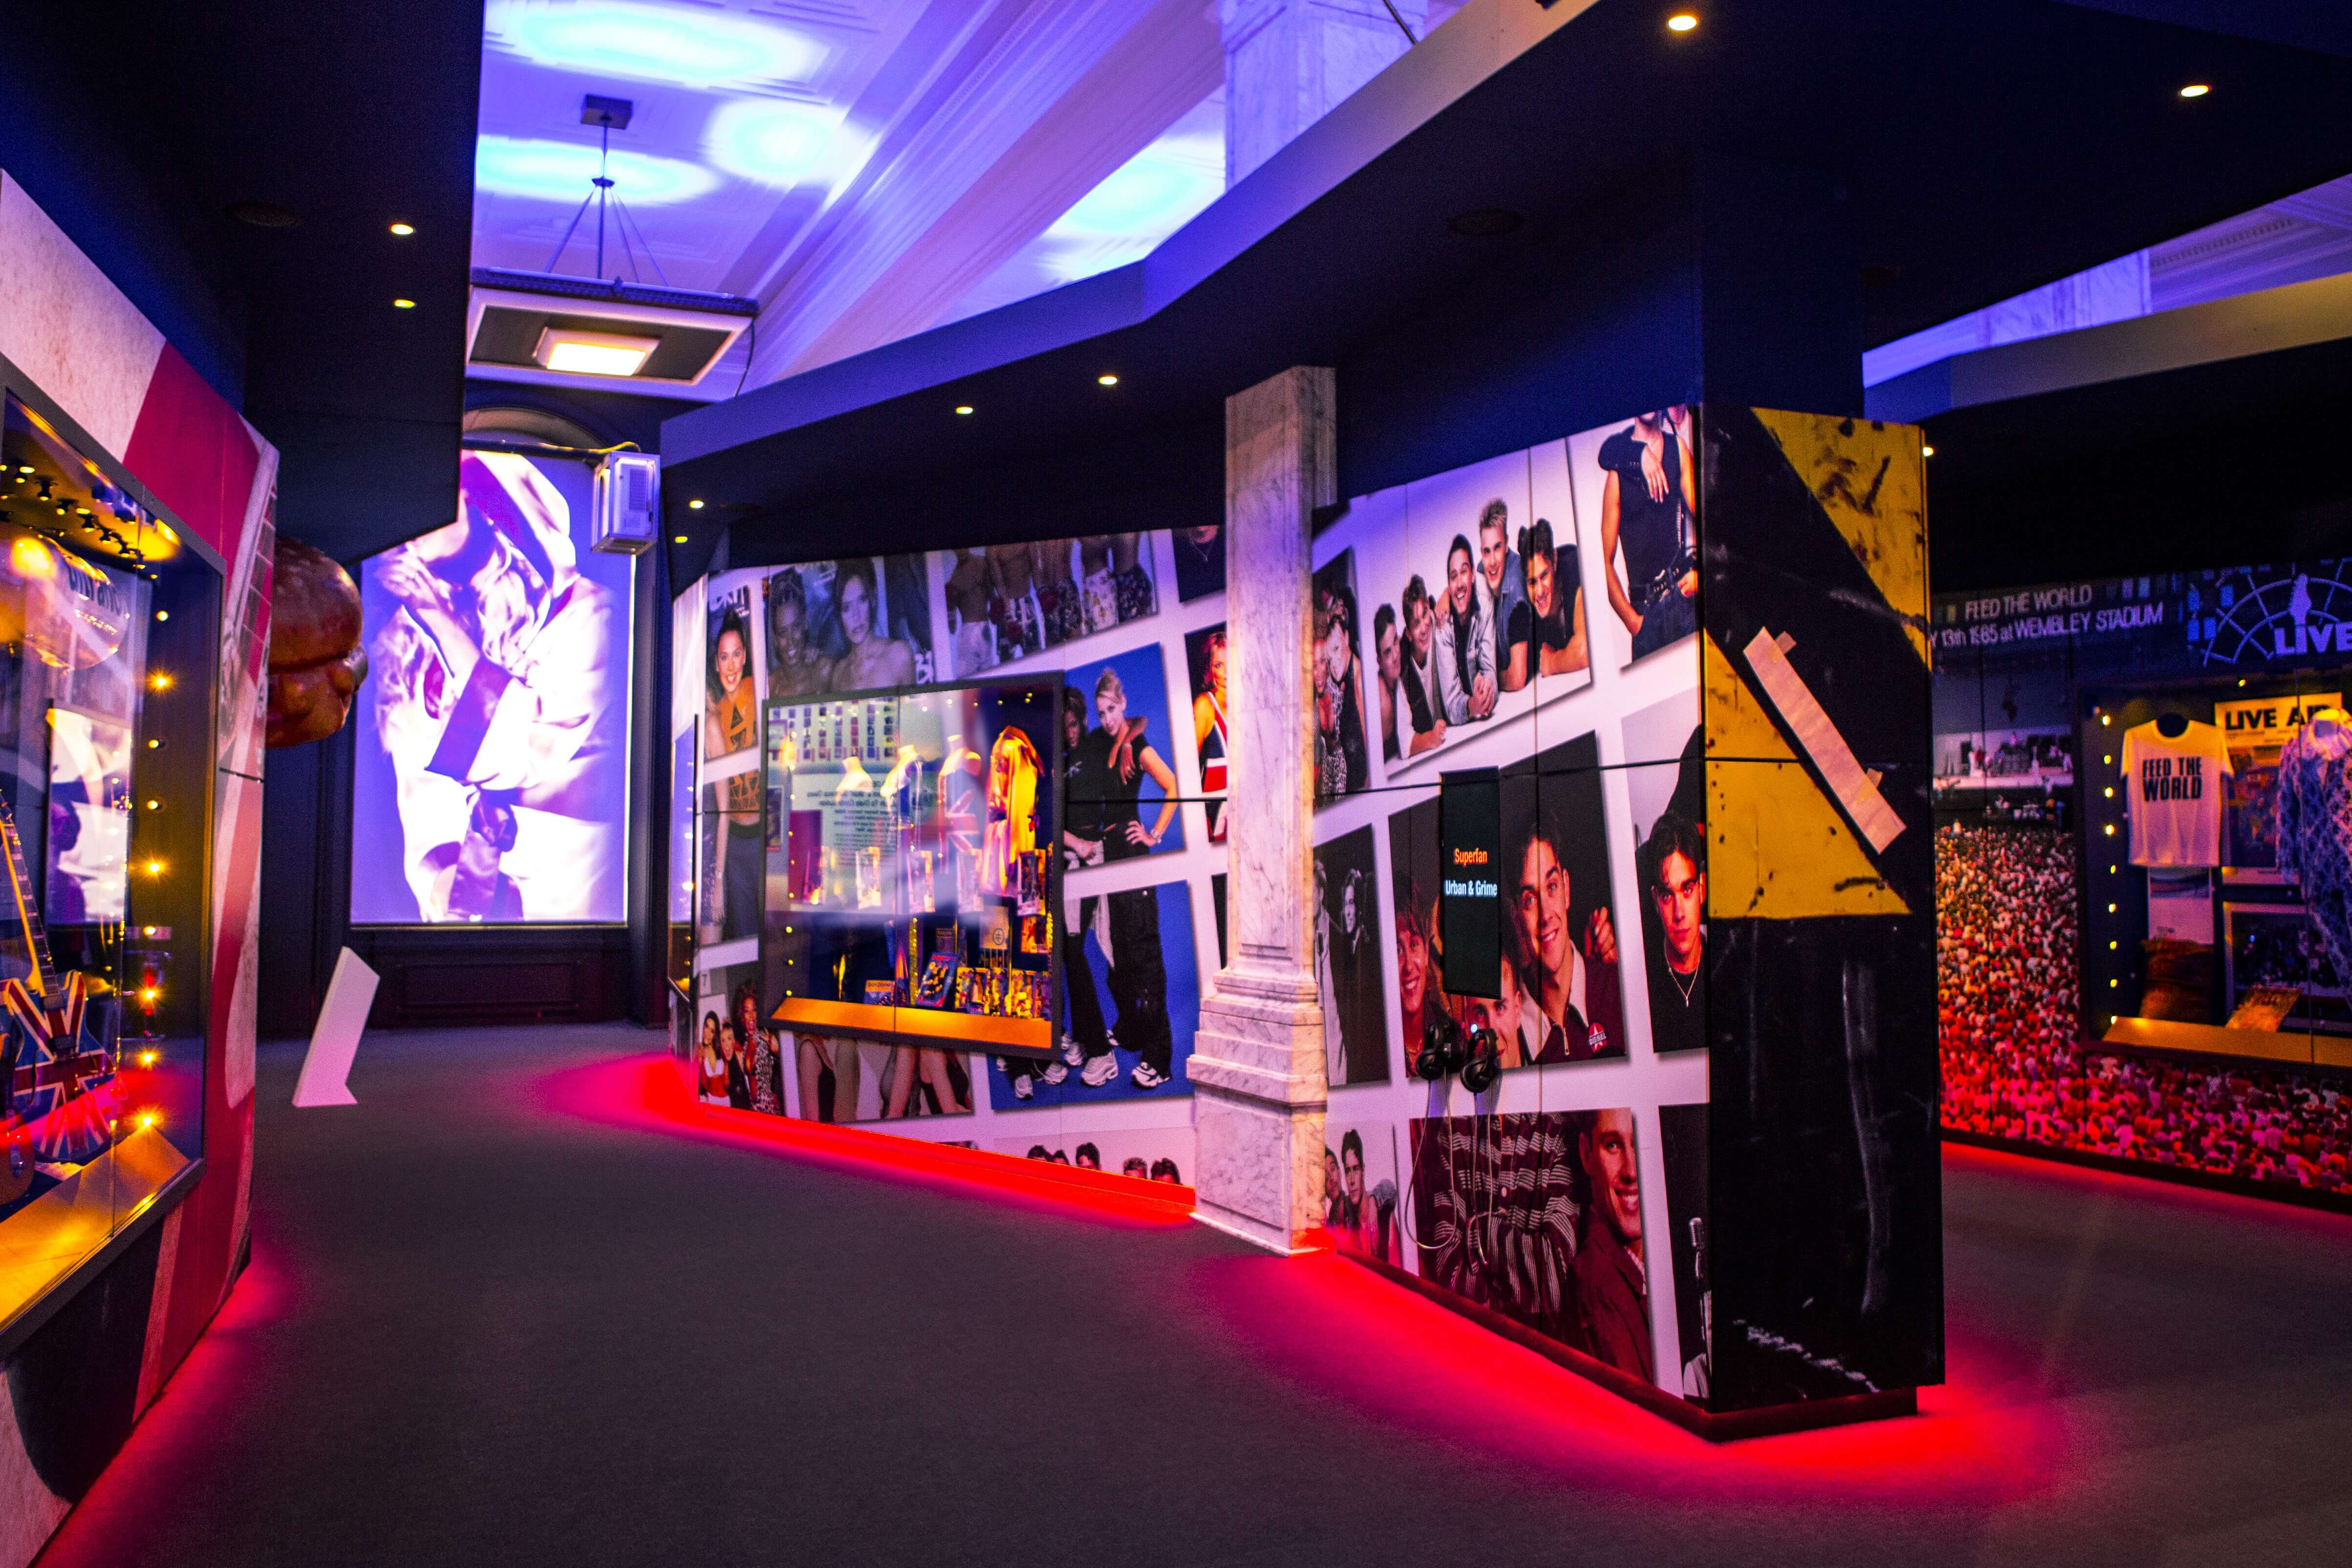 The-Spice-Girls-iconic-outfits-on-display-at-Liverpools-British-Music-Experience-min-1